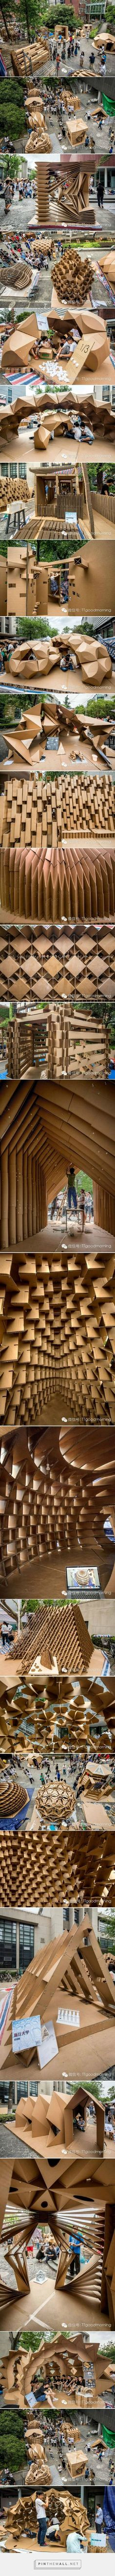 Amazing Cardboard House Exhibition - created via https://pinthemall.net